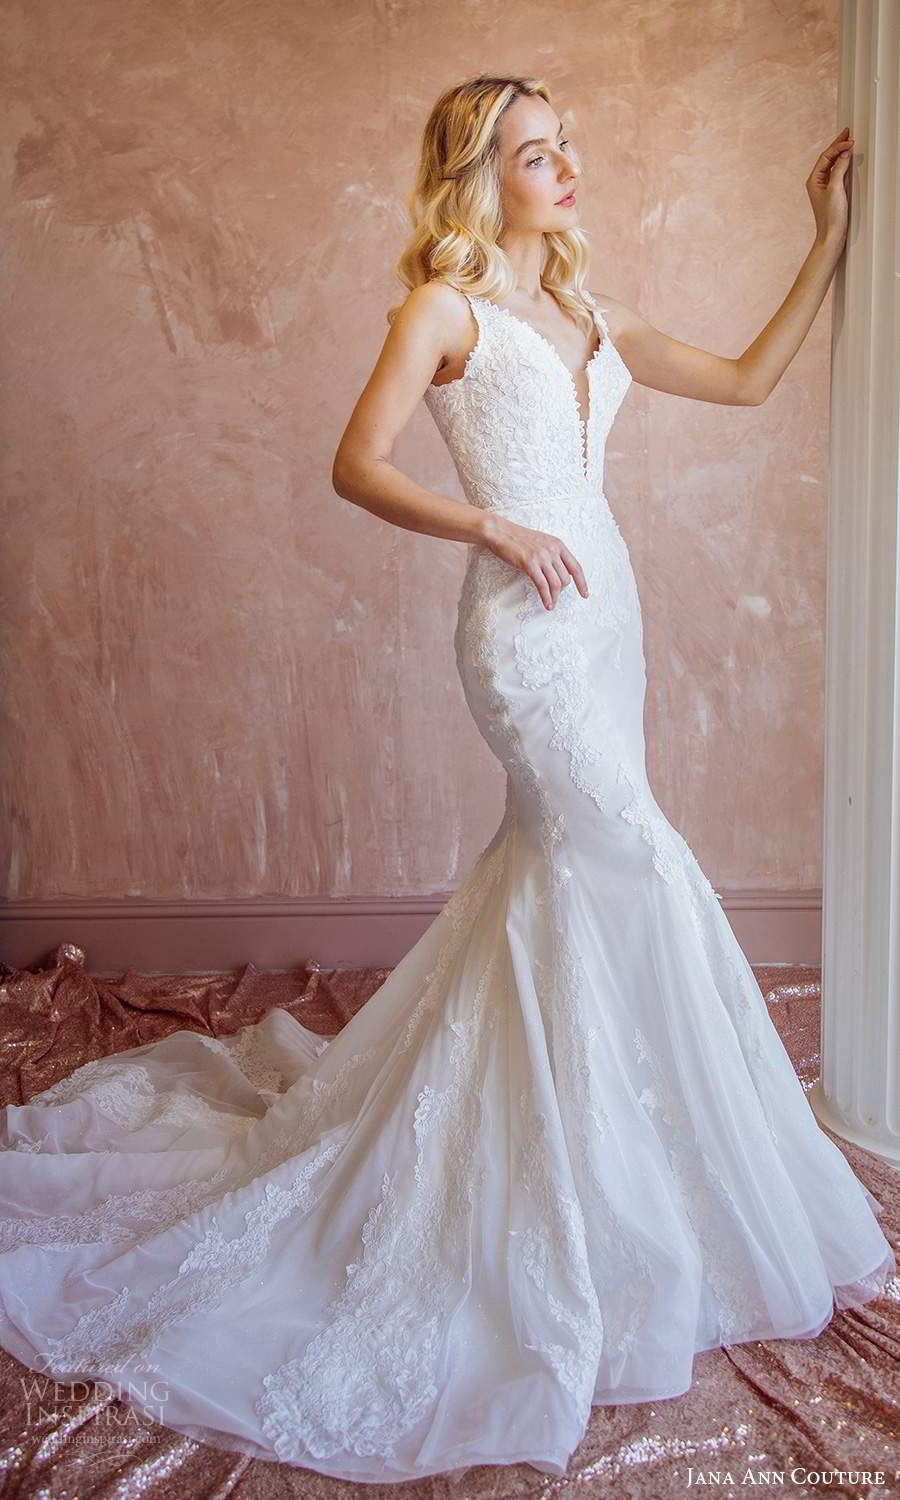 jana ann couture 2021 bridal sleeveless straps plunging v neckline fully embellished fit flare mermaid wedding dress chapel train (21) mv